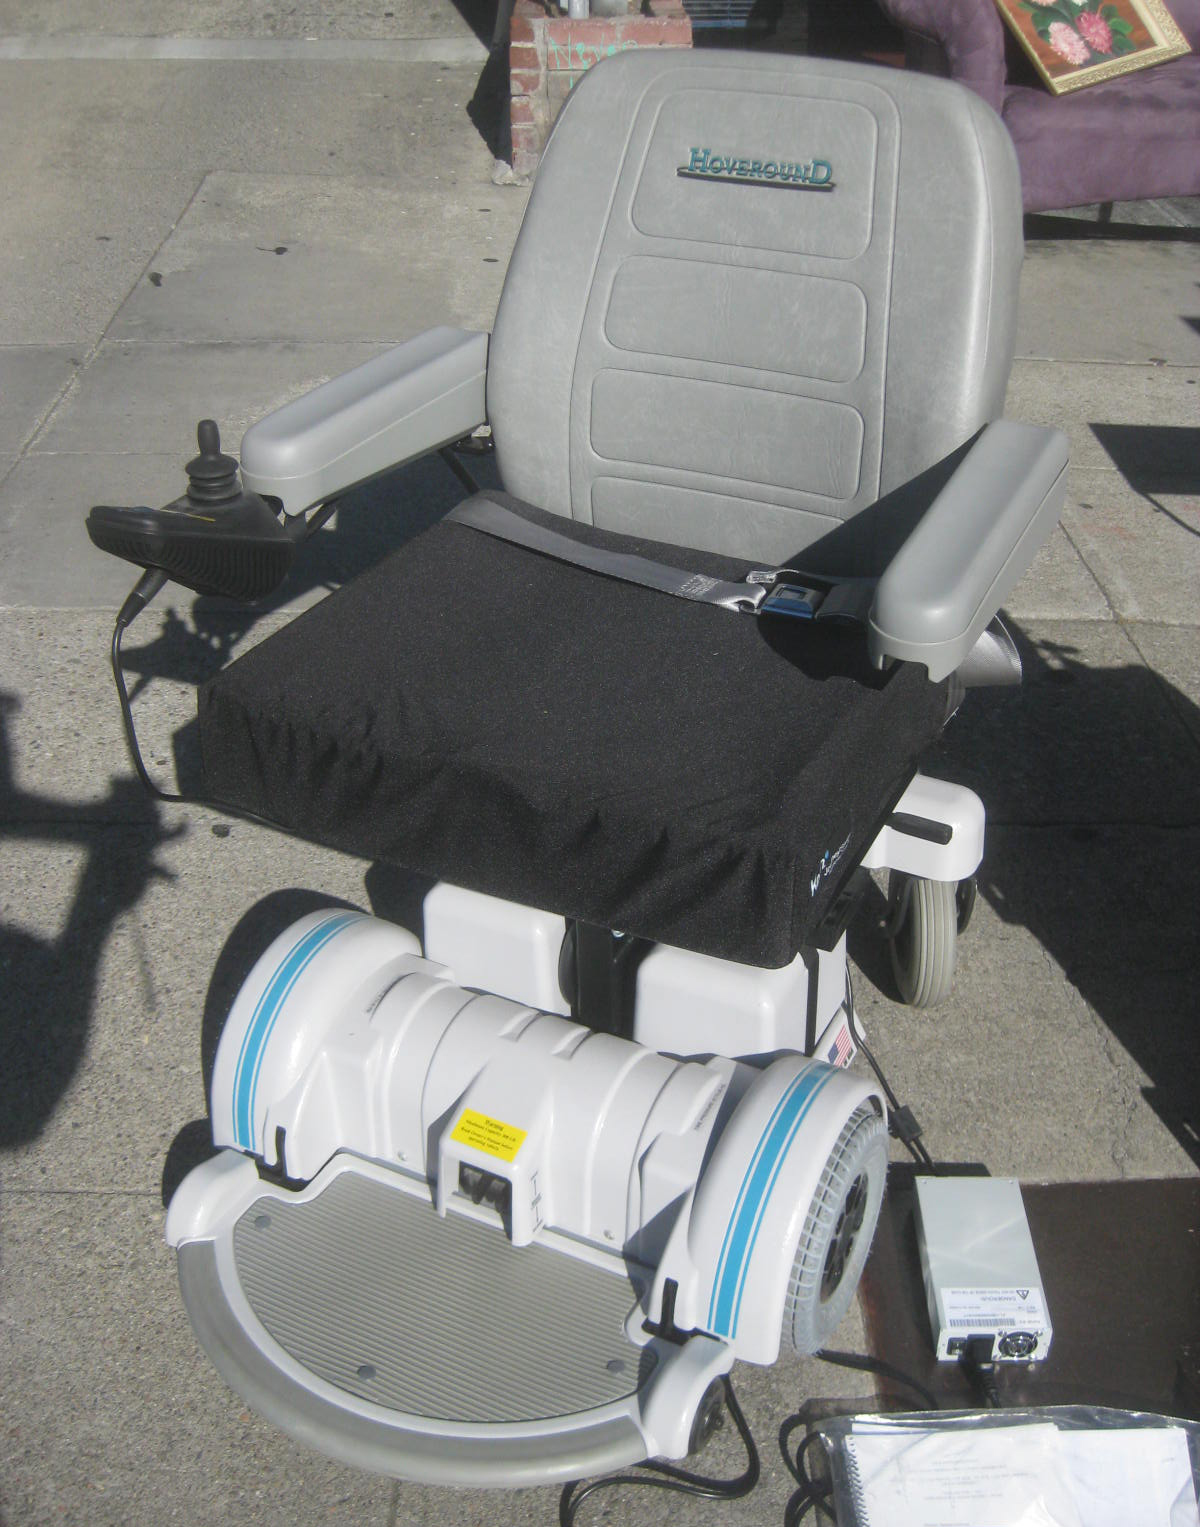 Hoveround Chair Uhuru Furniture And Collectibles Sold Hoveround Electric